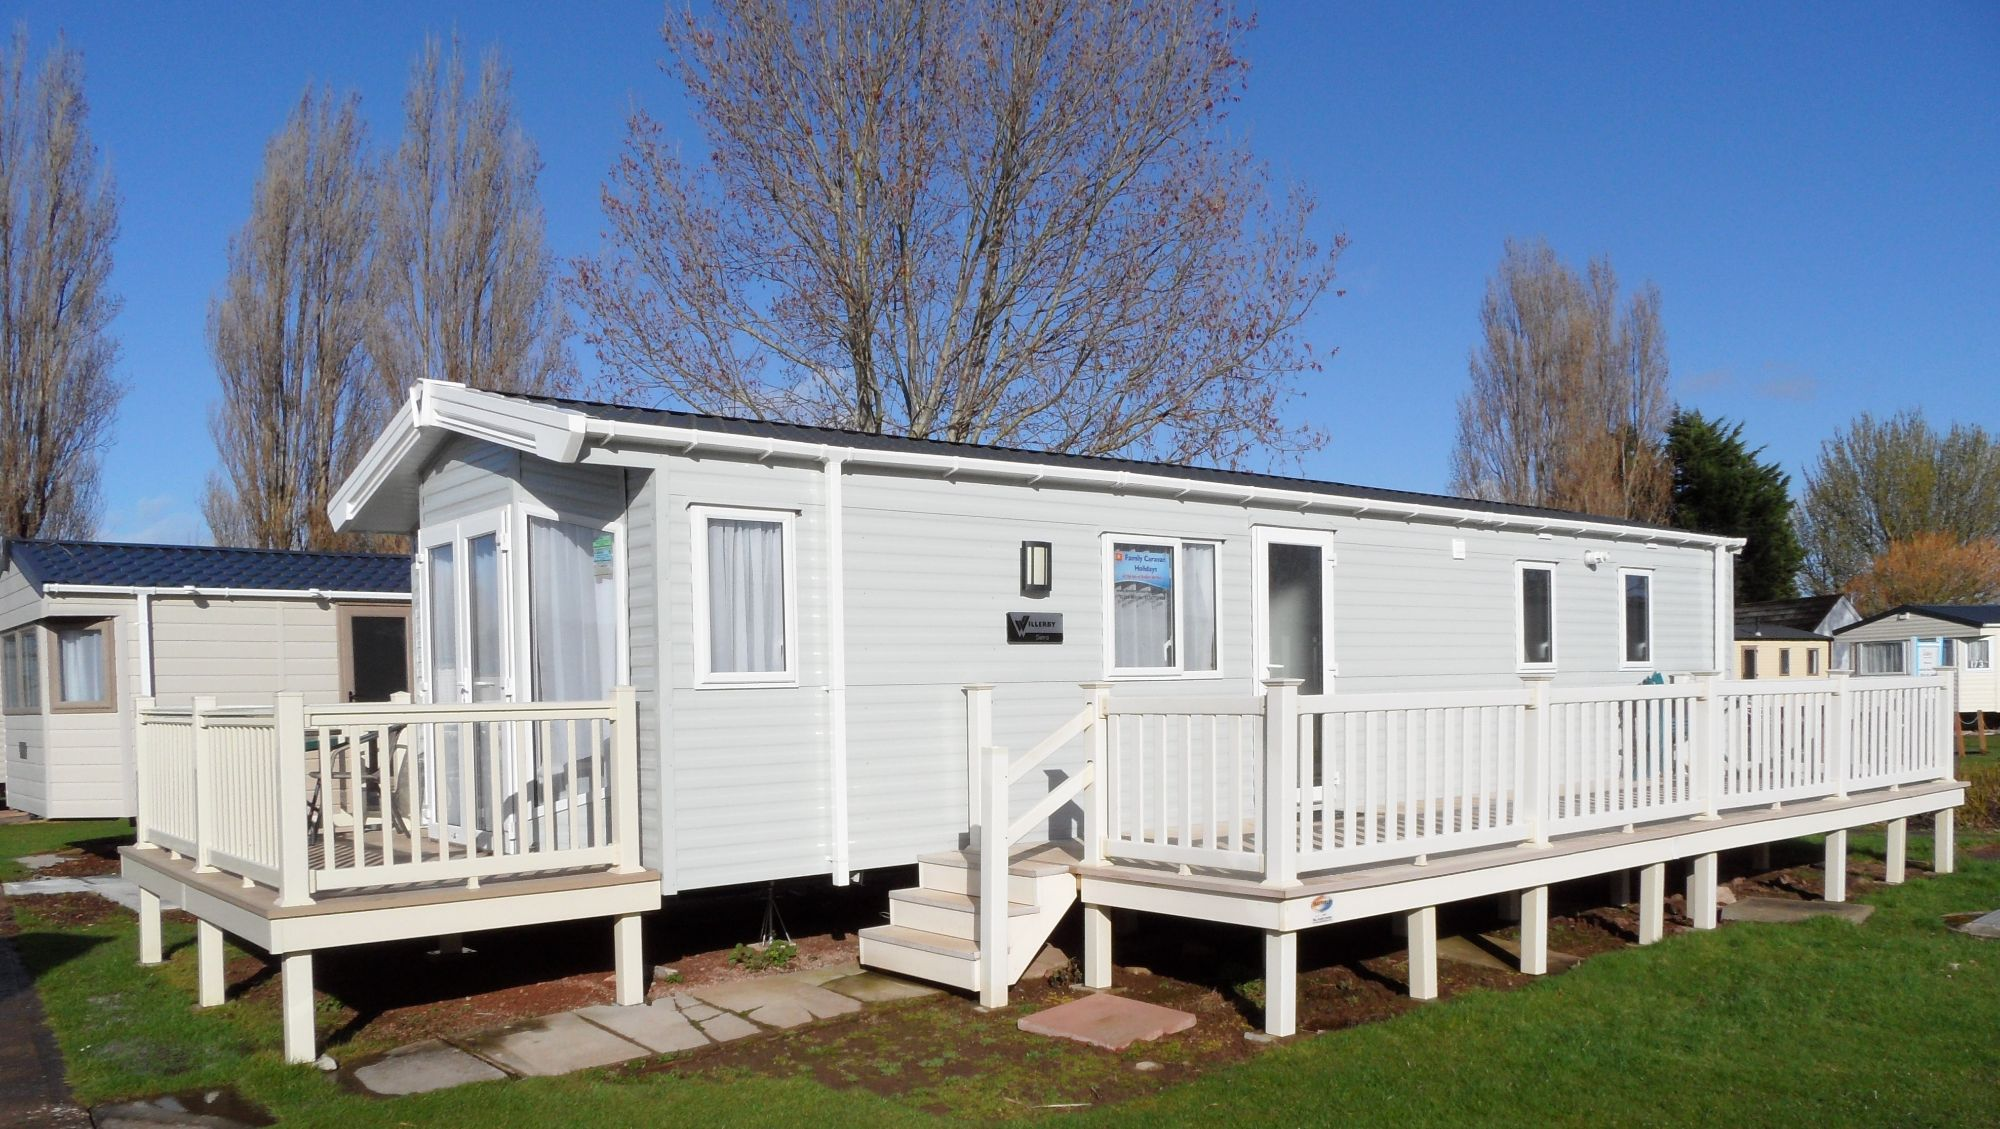 Butlins Minehead 3 Bedroom 6 berth Caravan